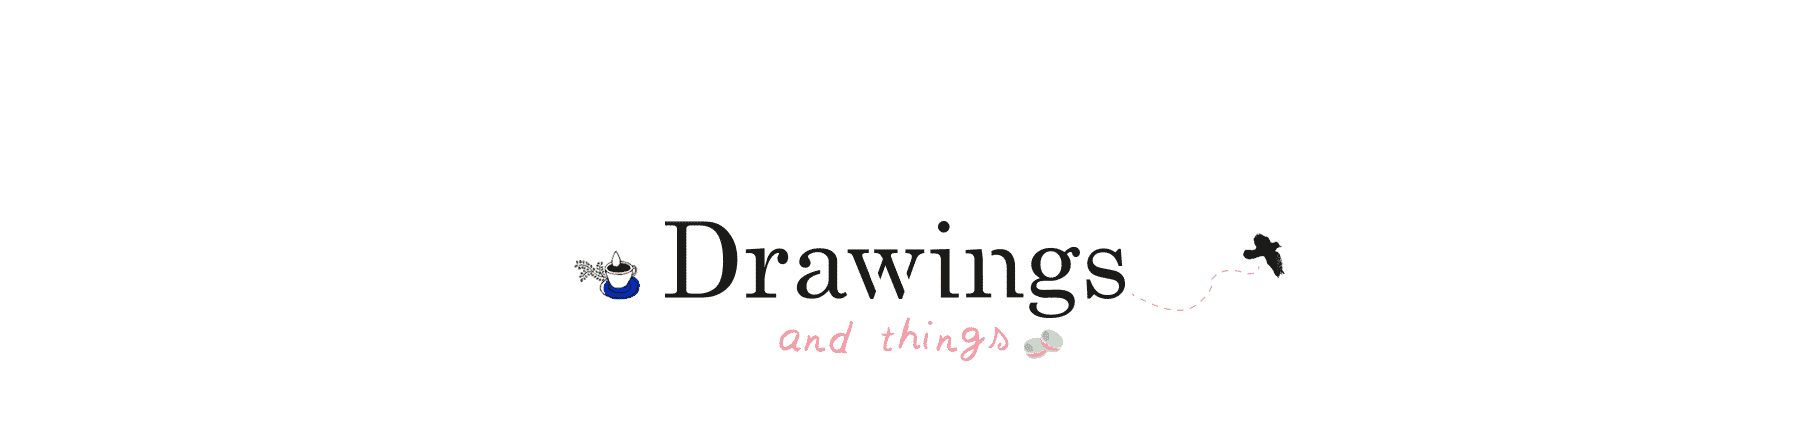 drawings and things banniere